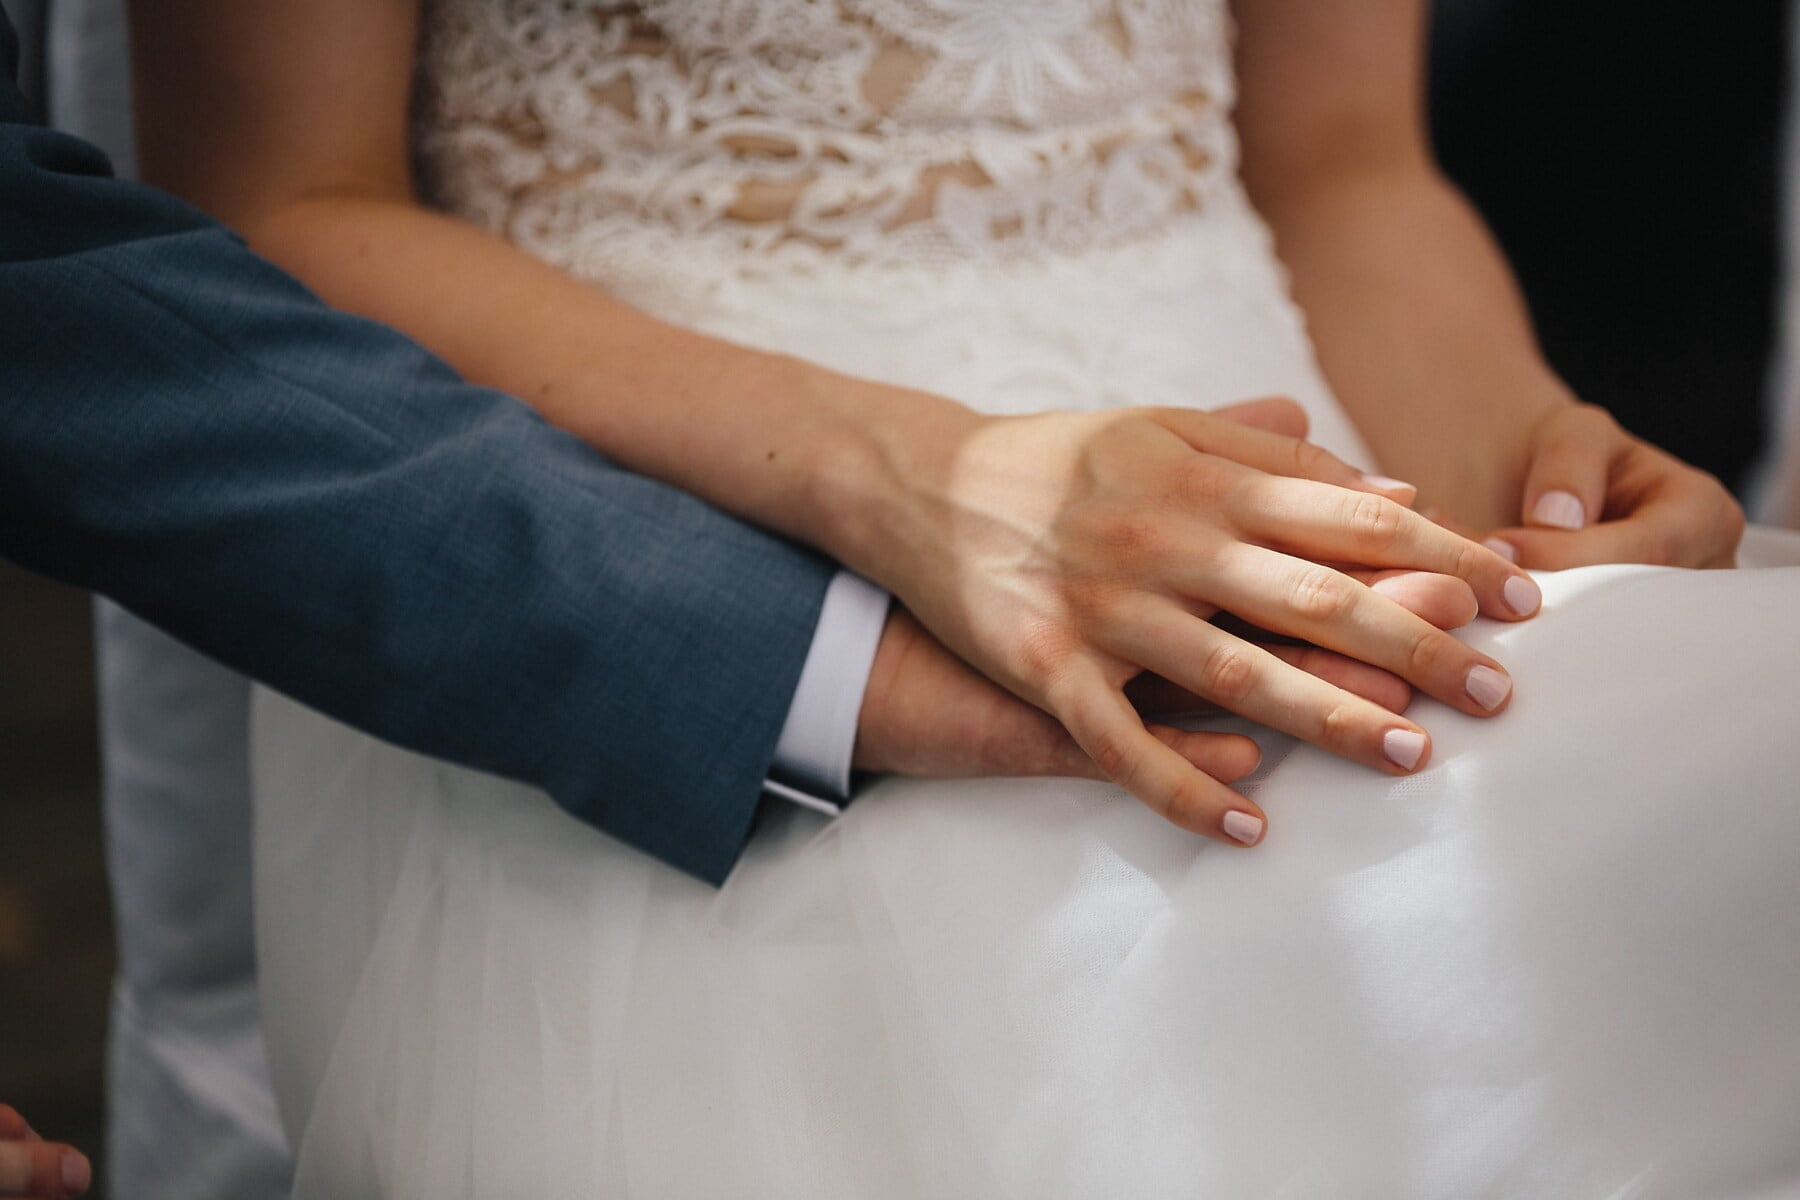 wedding, holding hands, hands, touch, finger, romance, passion, love, woman, bride